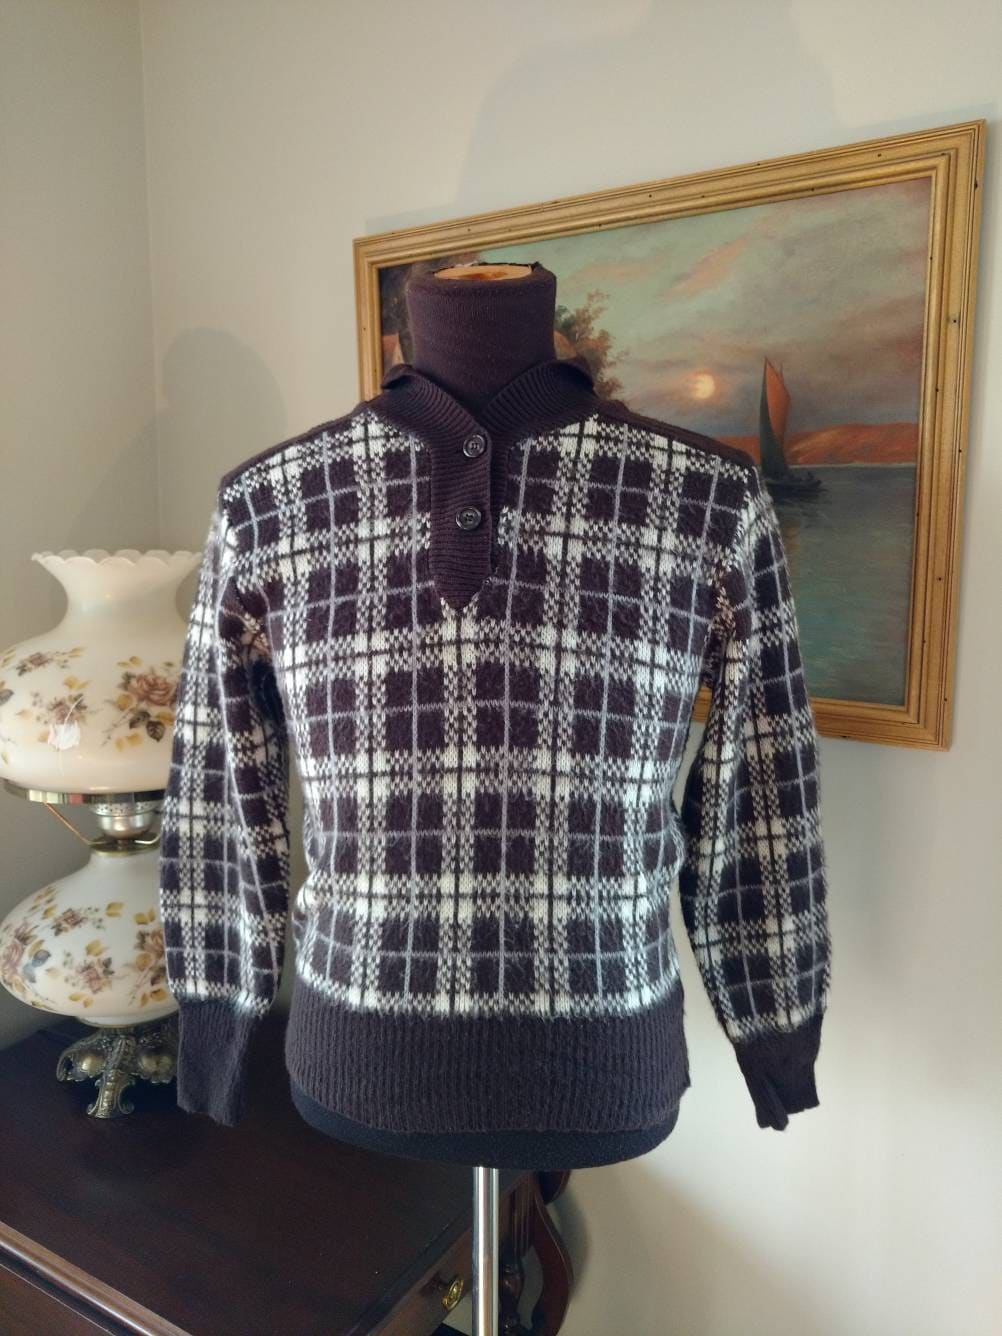 6f13292c6bd8 Vintage Kmart Sweater Brown Plaid Acrylic Made in Korea Size